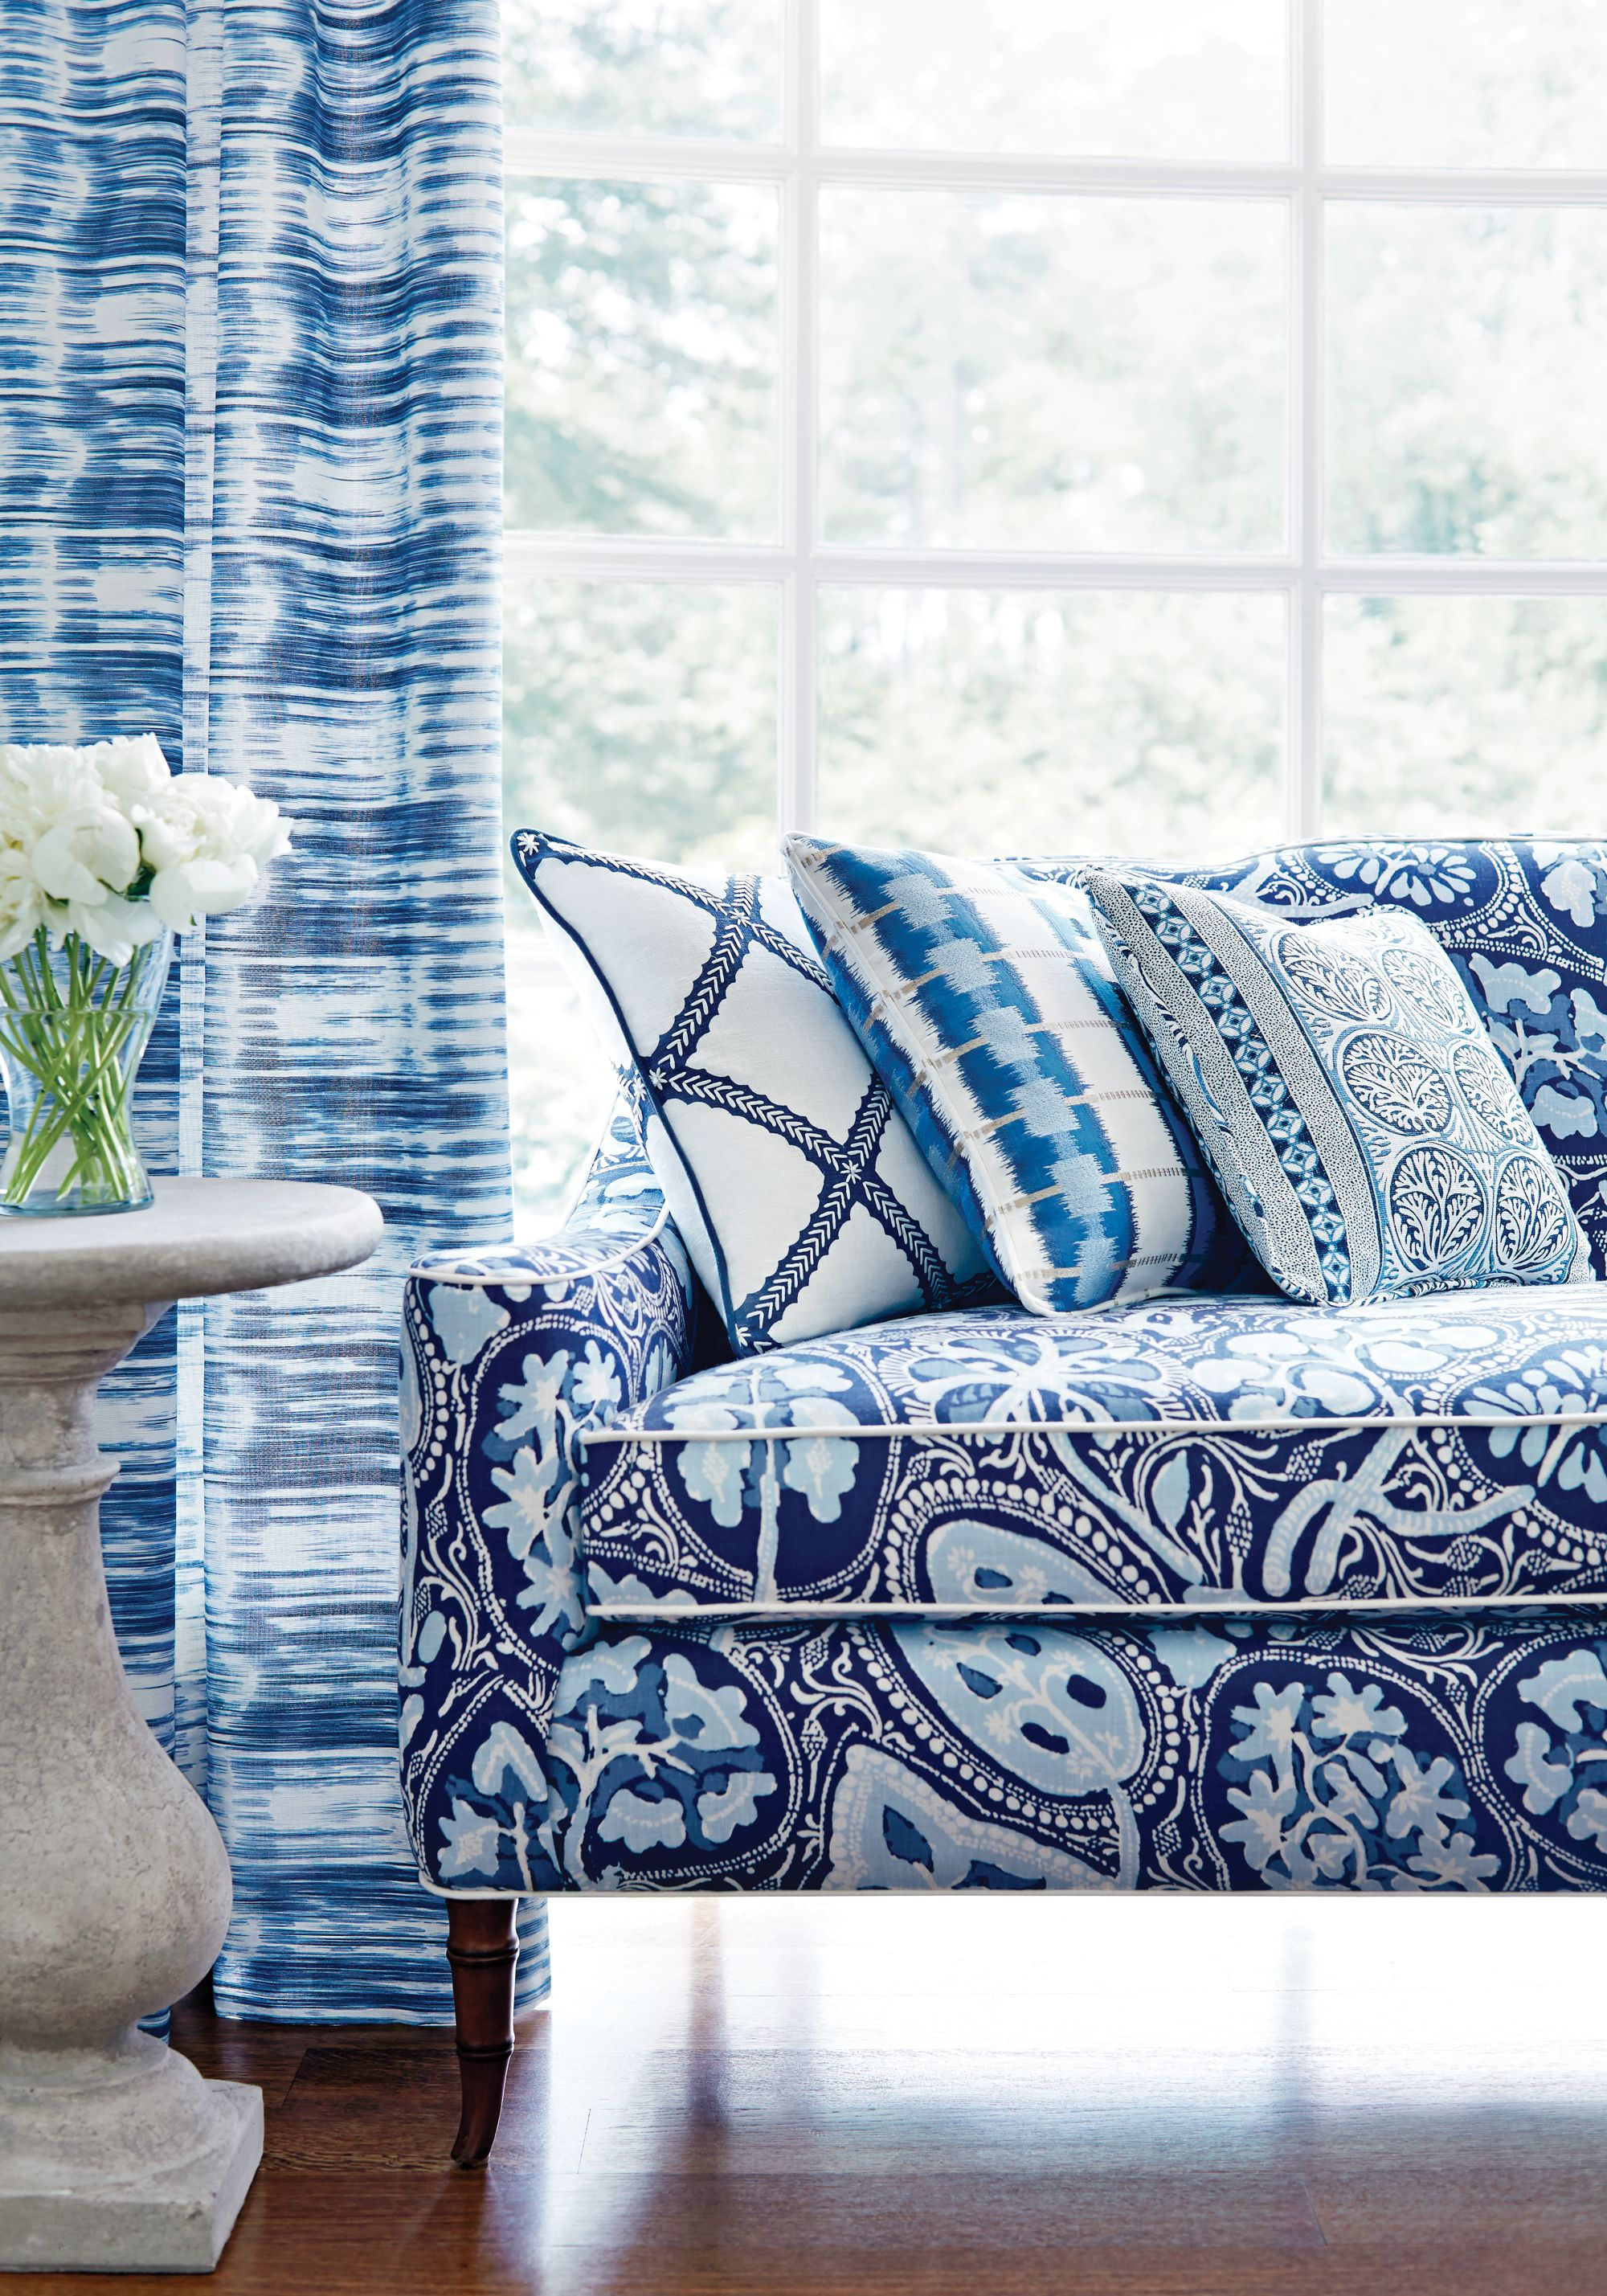 cochin from trade routes collection available in the fabric house